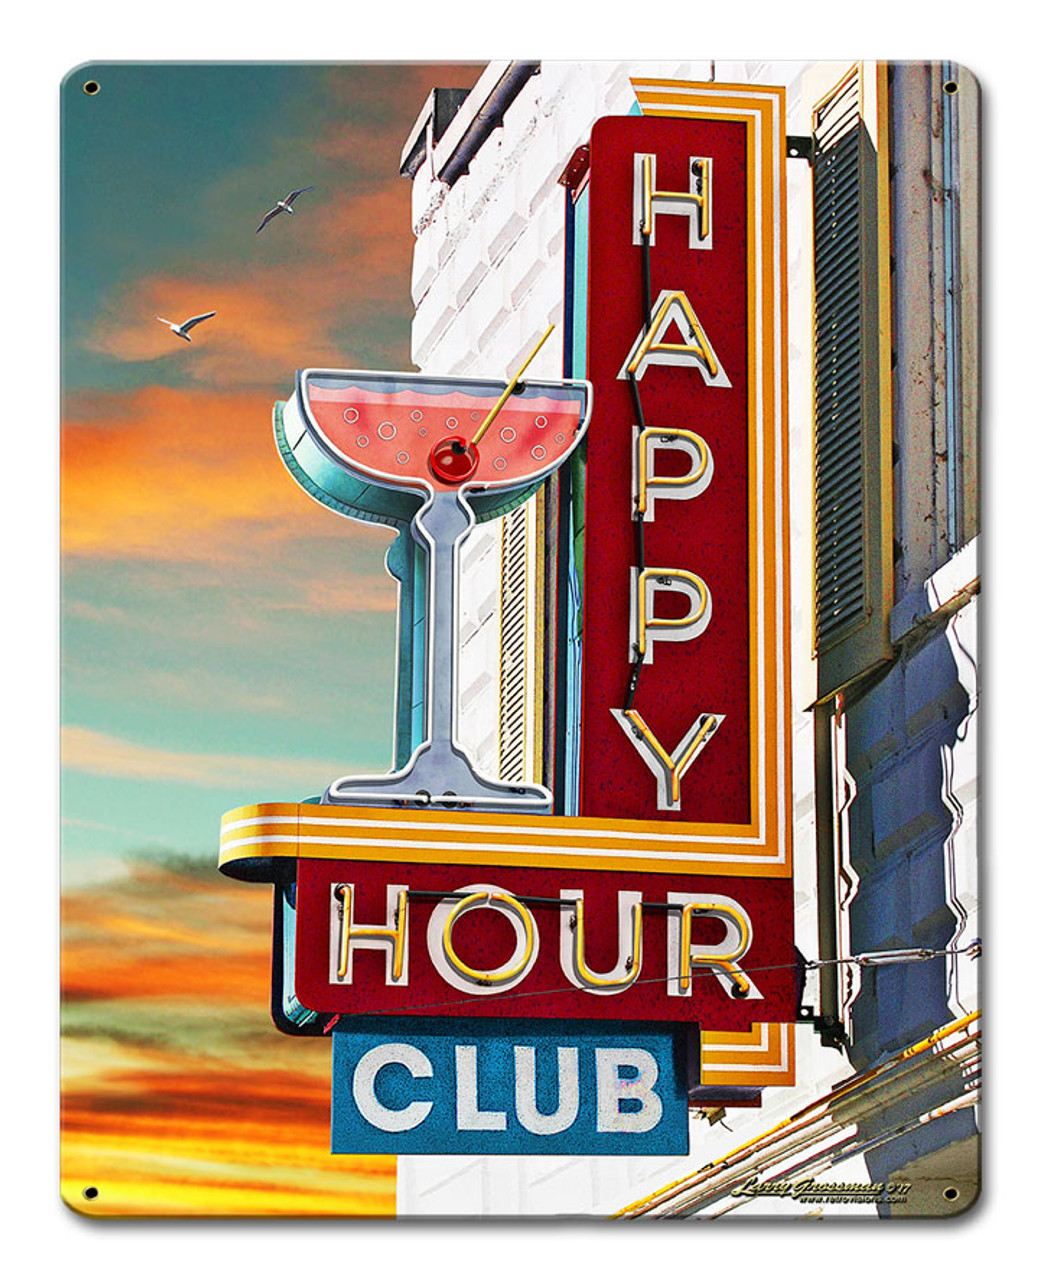 Happy Hour Club Metal Sign 12 x 15 Inches